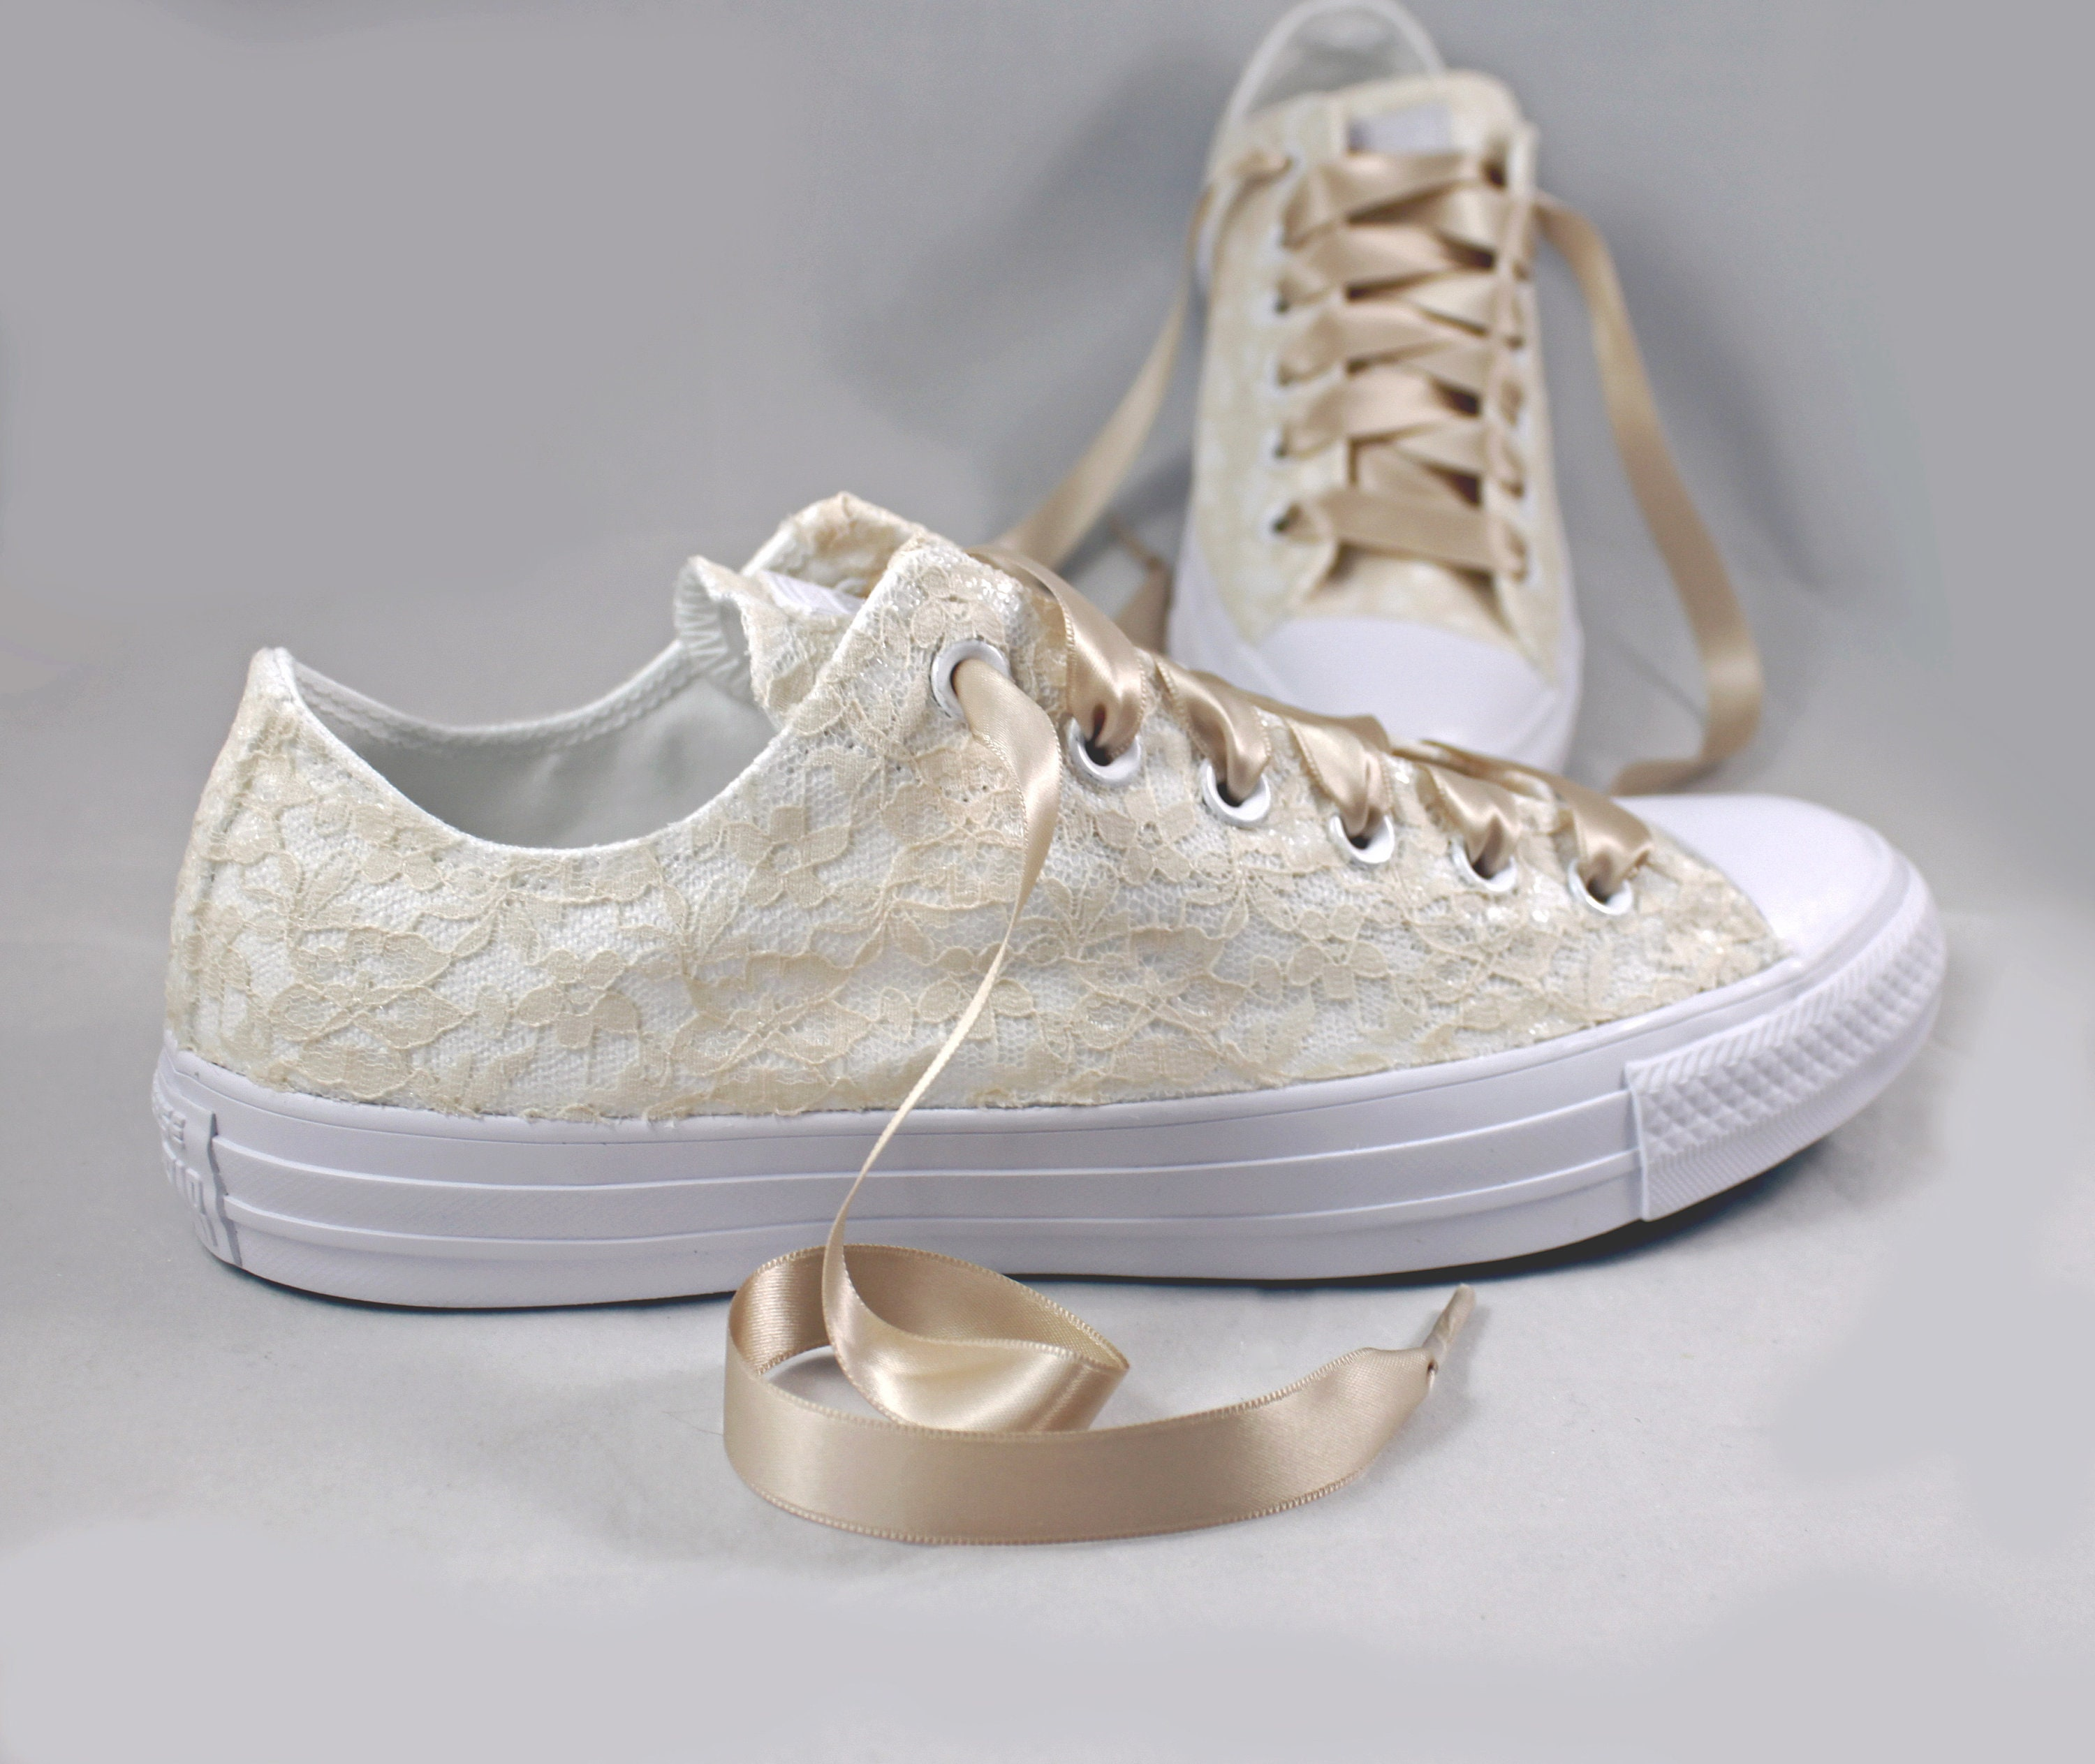 Champagne bridal converses monochrome lace converse wedding tennis shoes  wedding converse jpg 3000x2526 Champagne converse shoes 84febb7e5